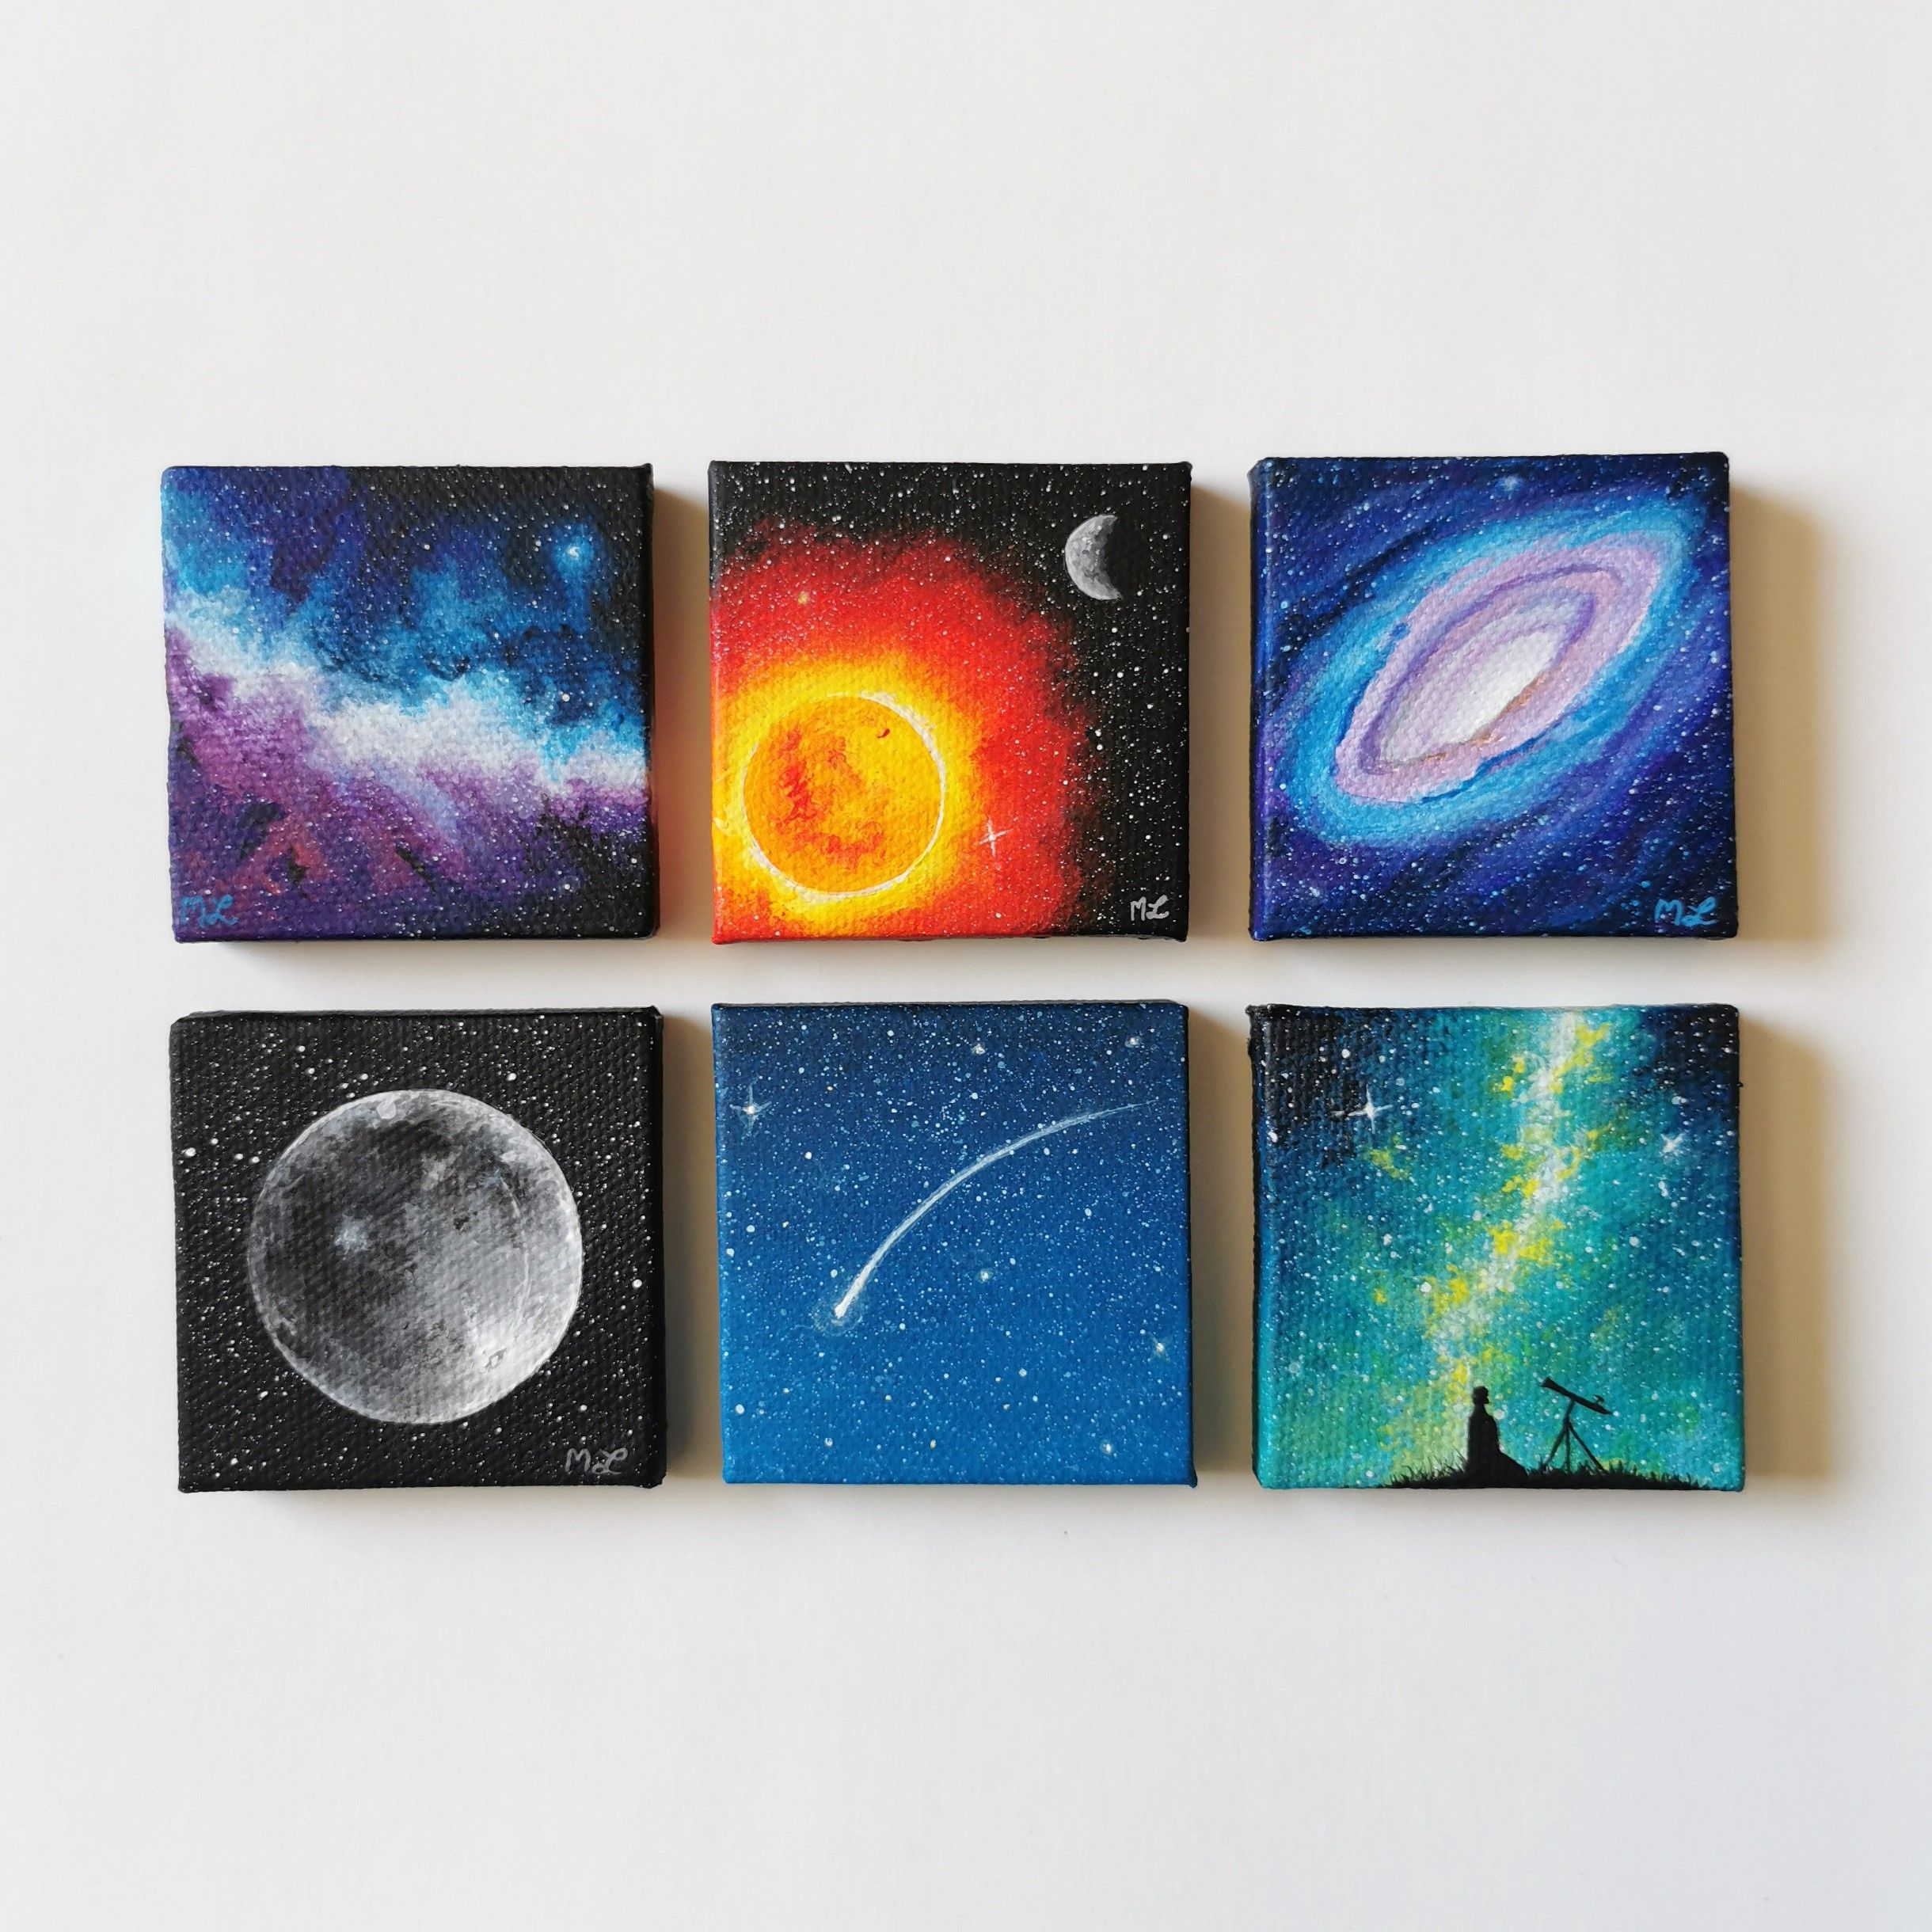 A collection of tiny space paintings I made! Each